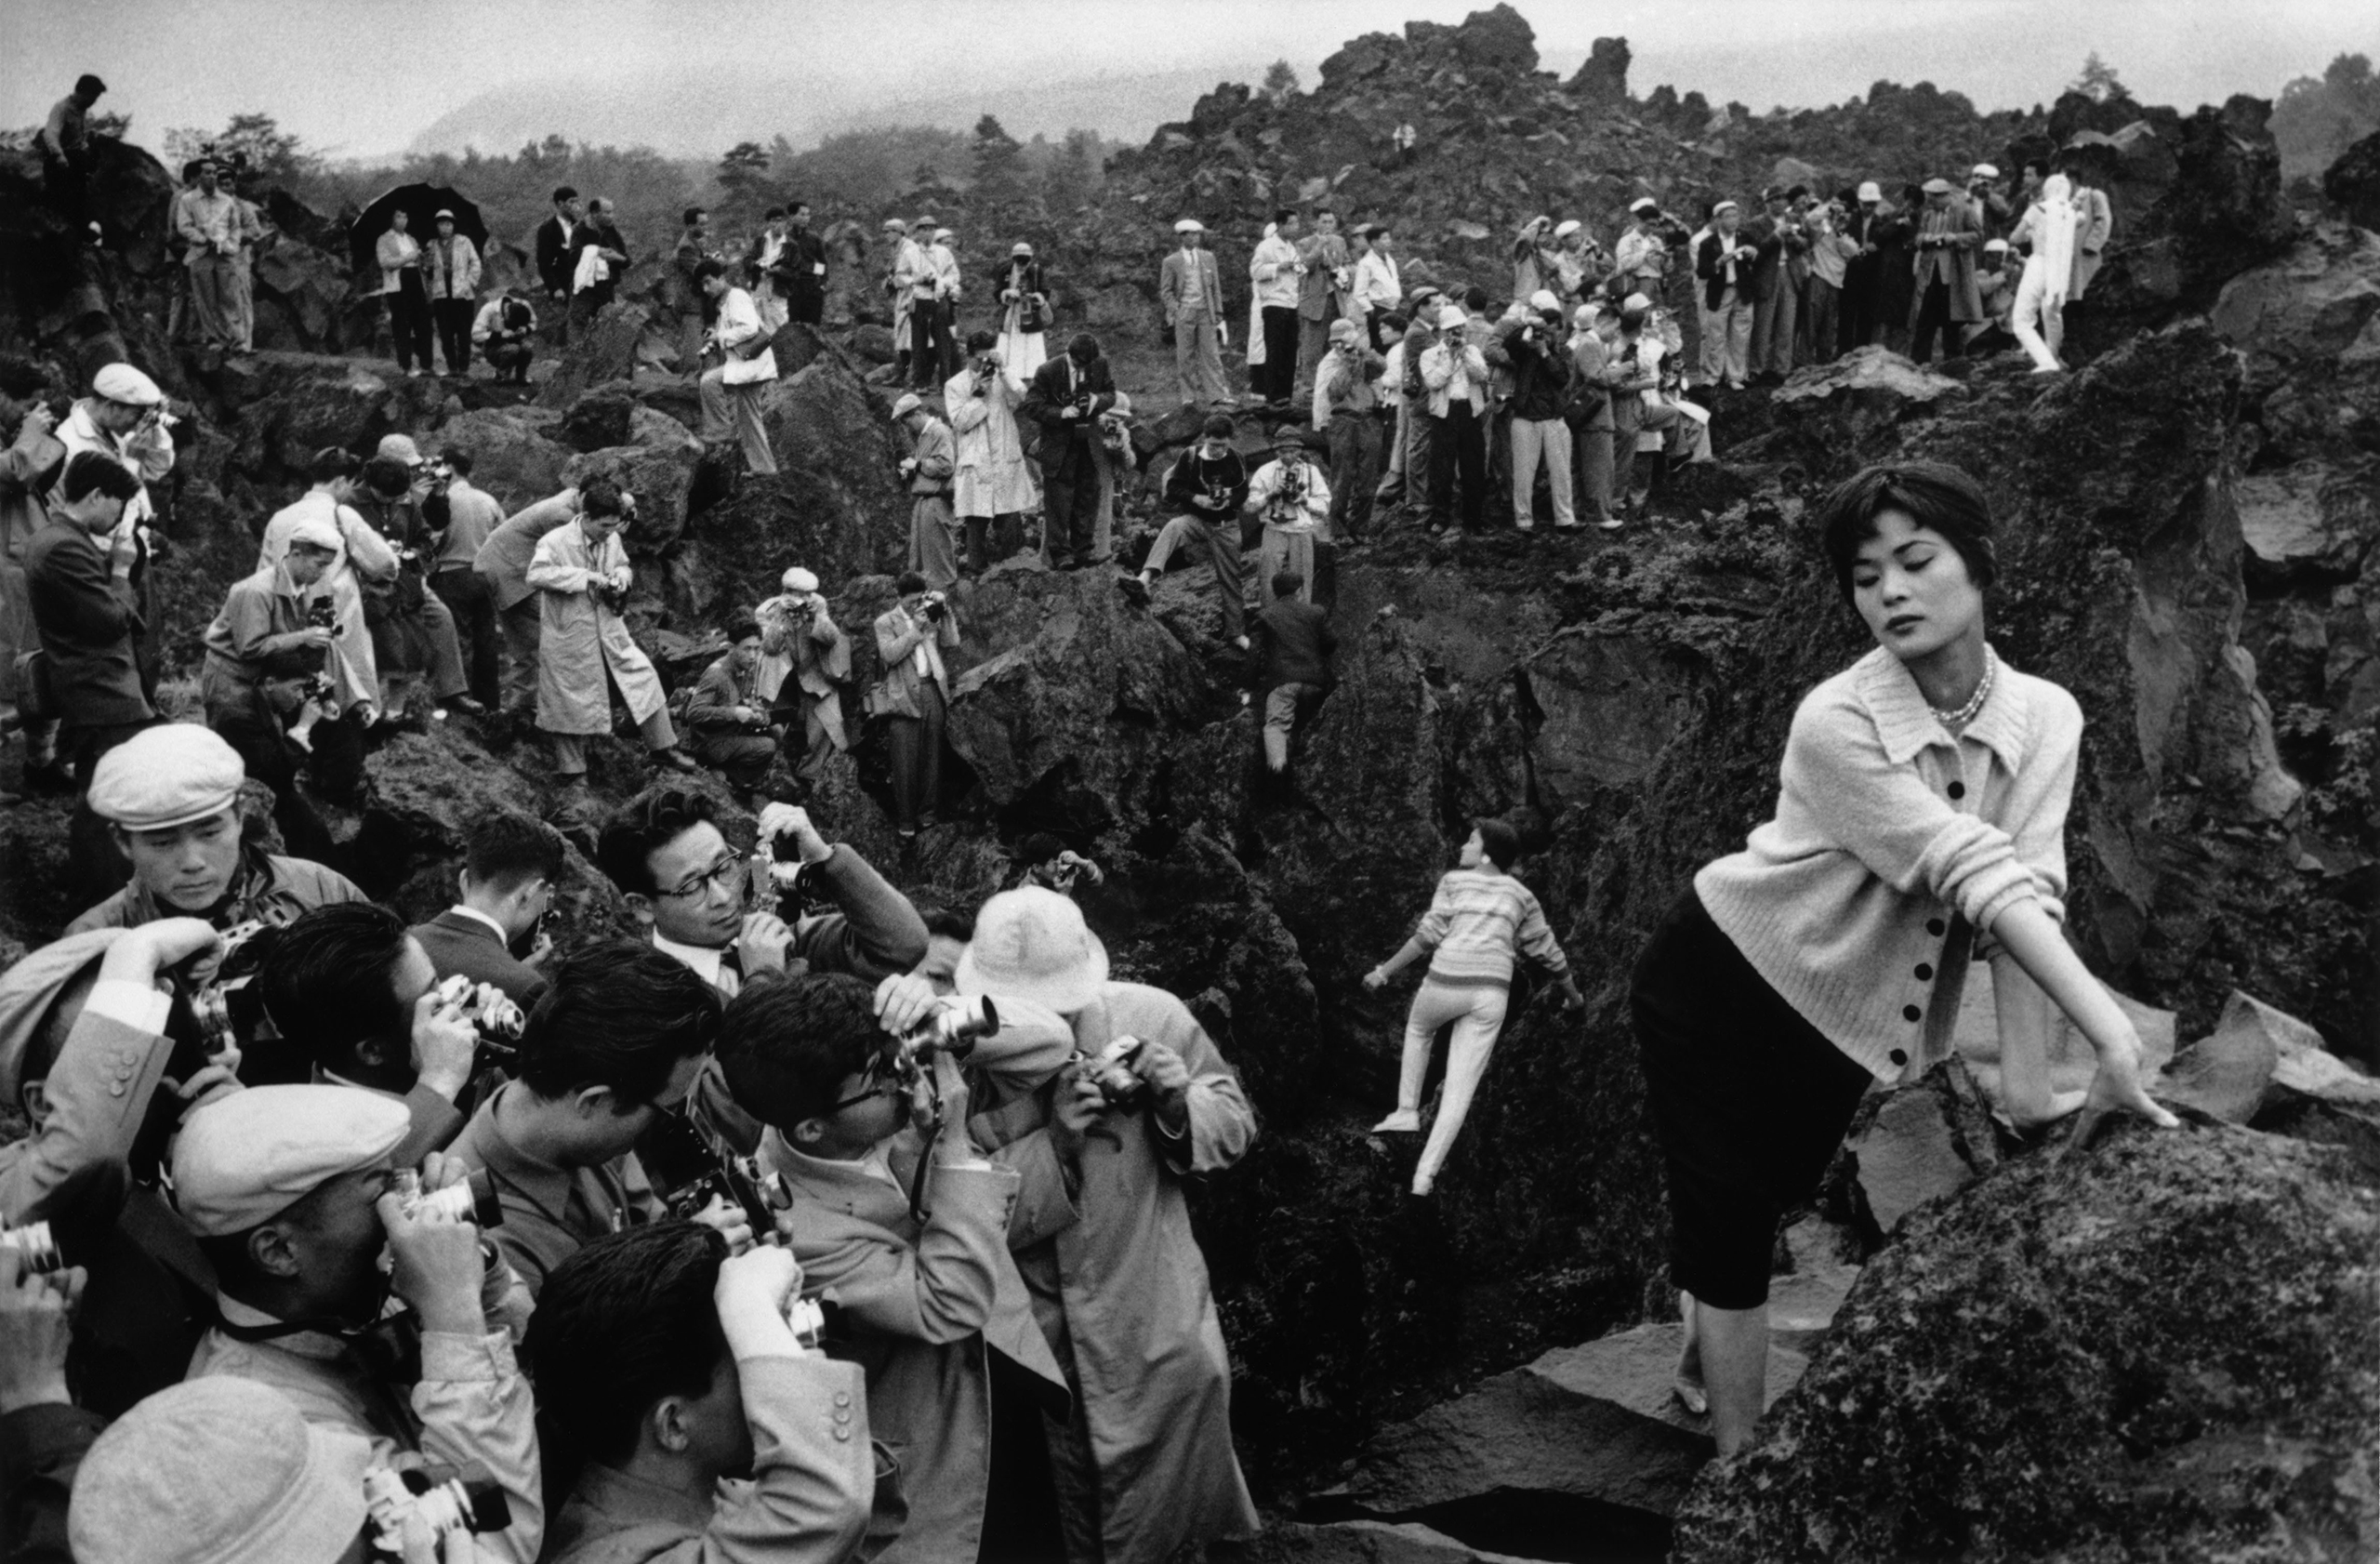 Photographer's rally in Karuizawa, Japan, 1958.